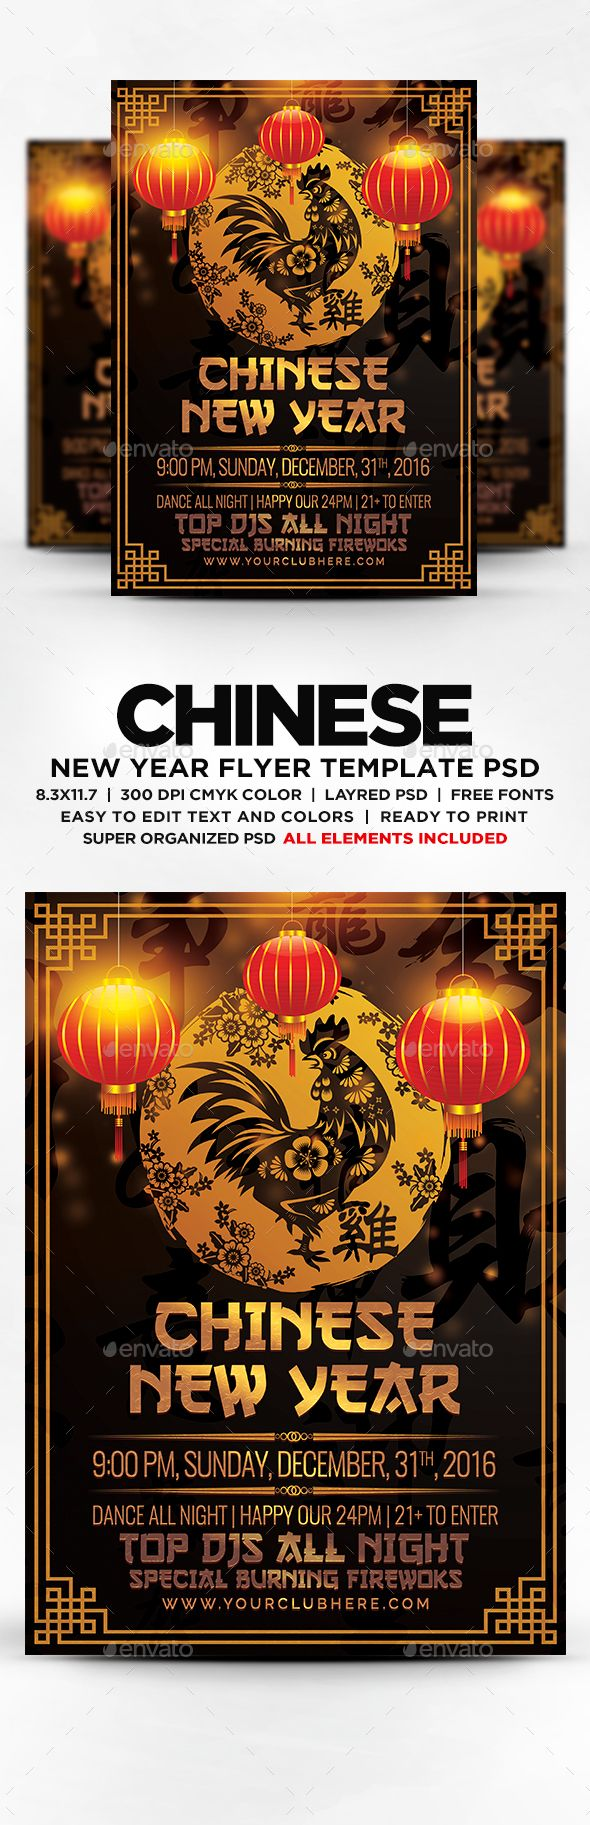 chinese new year flyer flyers print templates download here httpsgraphicriver